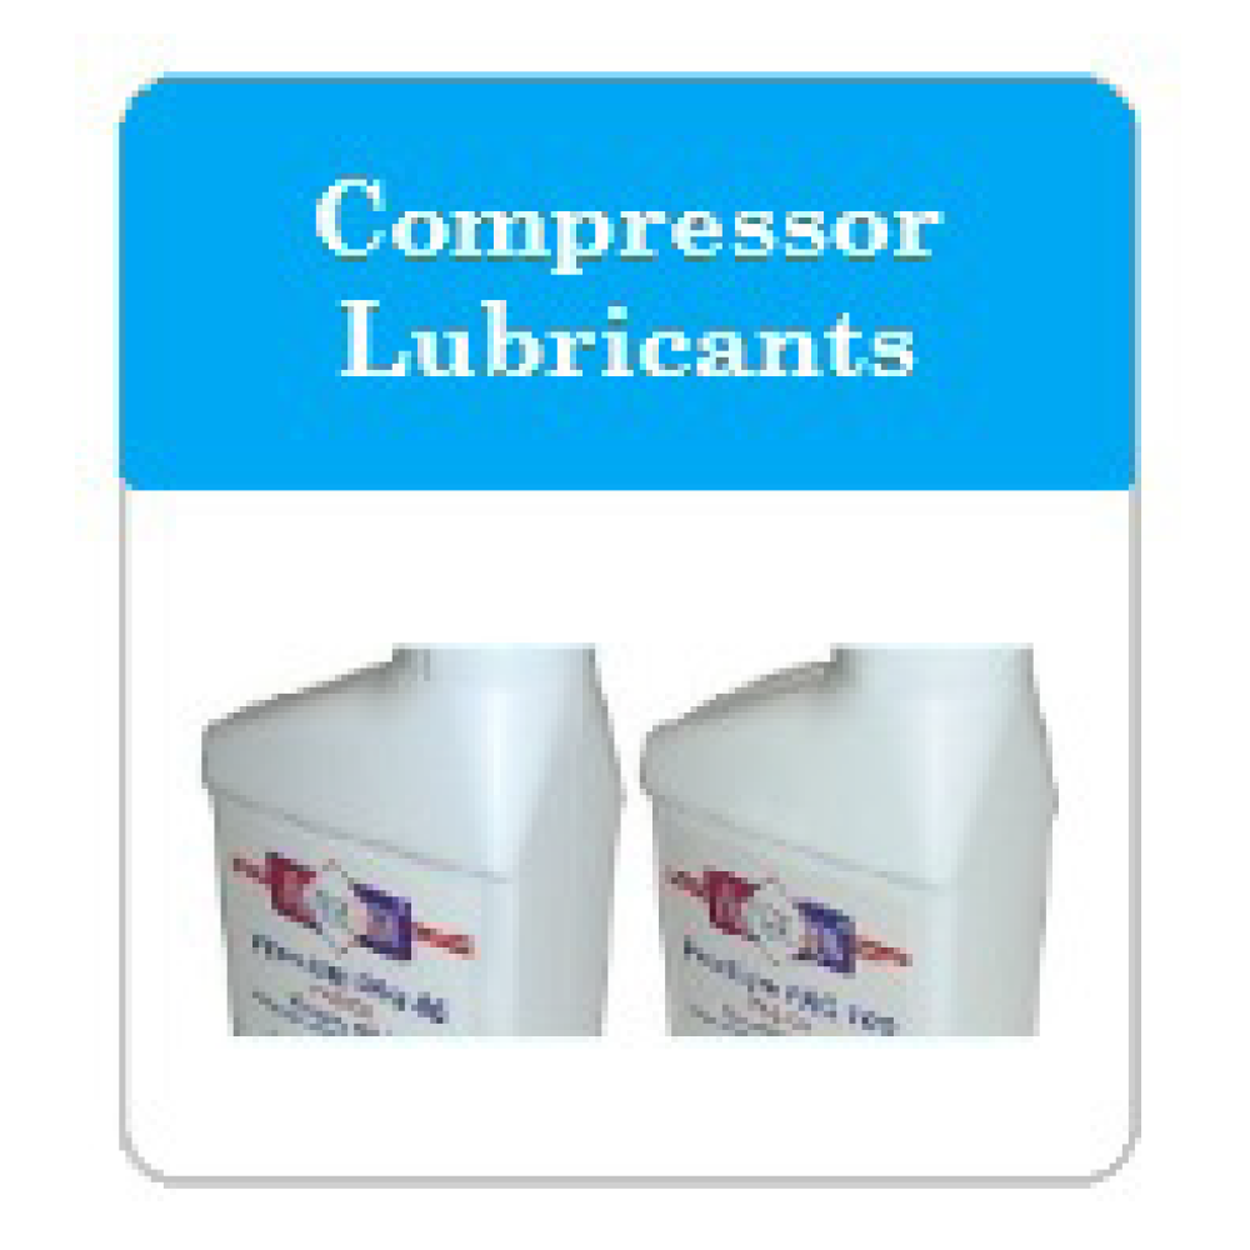 Bus AC Compressor Libricants